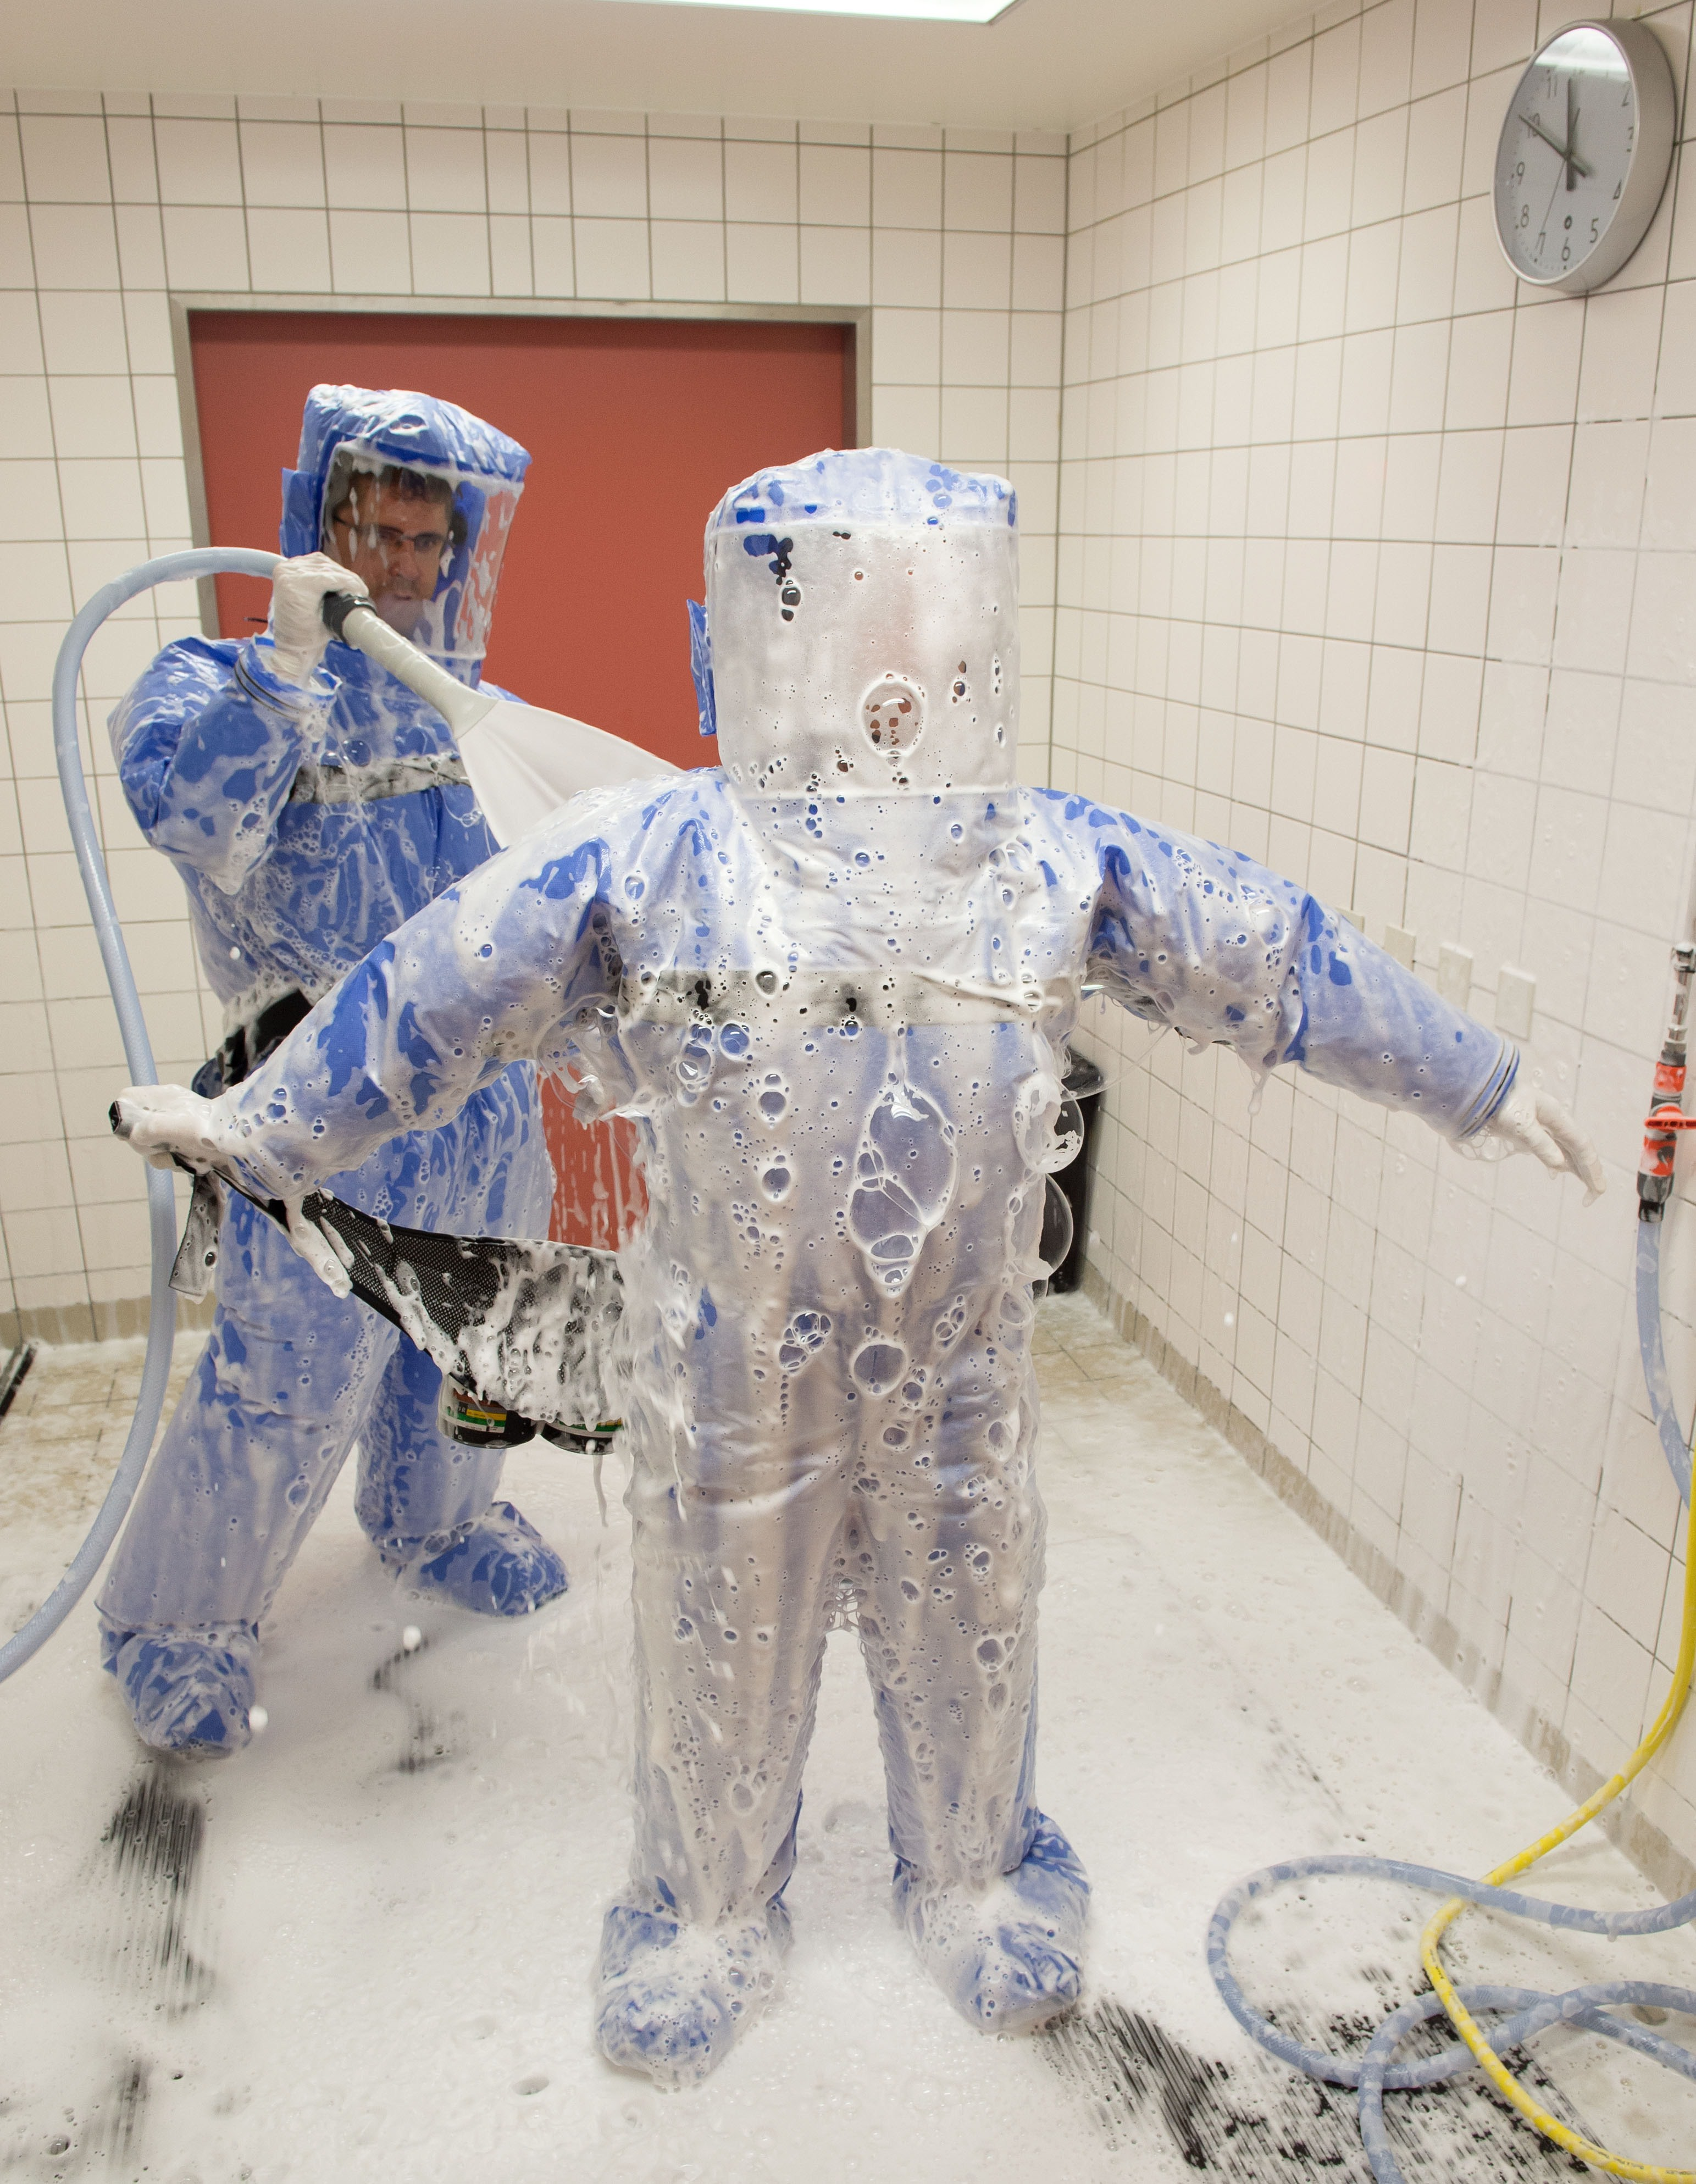 Infectious disease specialist Florian Steiner and quarantine office leader Thomas Klotzkowski disinfect themselves during a demonstration of the proceedings at the ward of Berlin's Charite hospital on August 11, 2014.